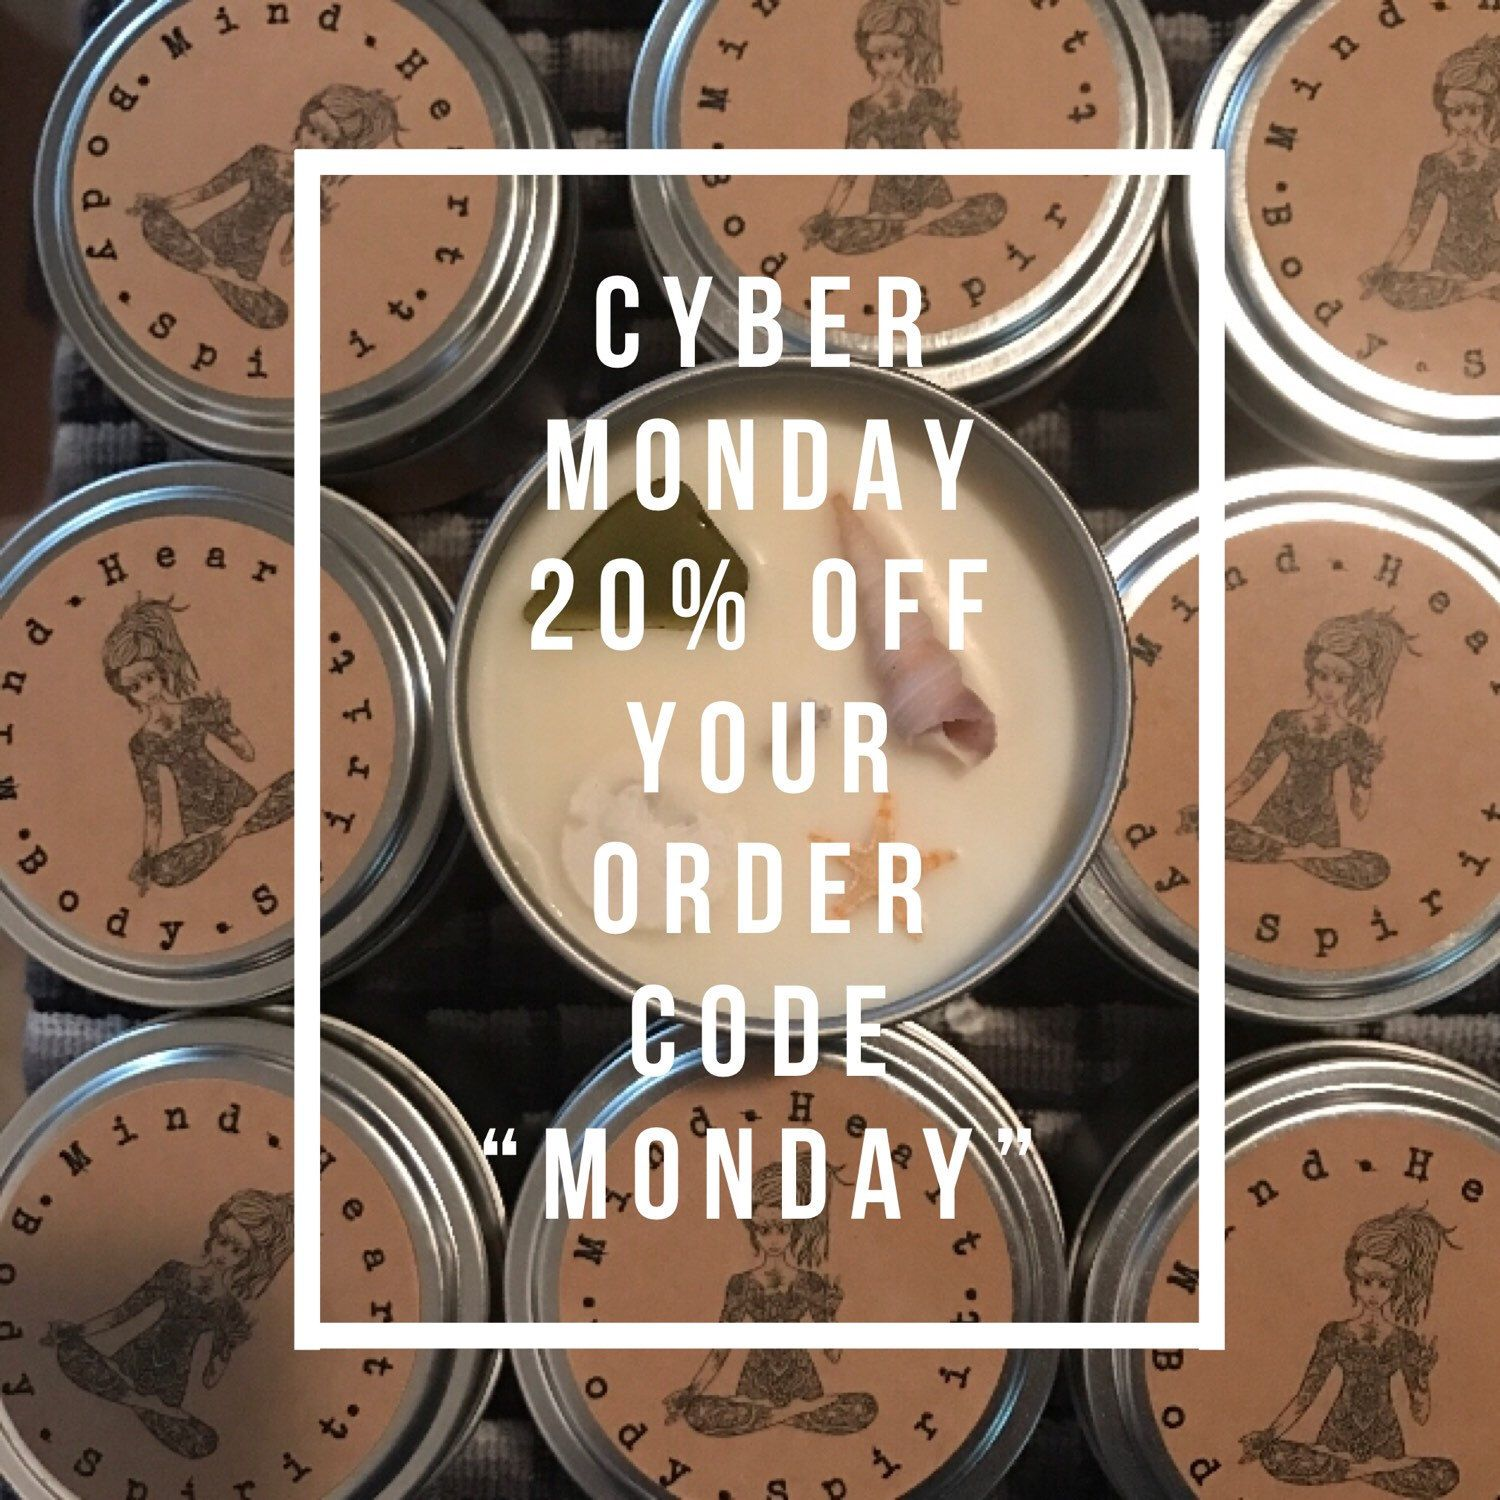 Its cyber monday bargain shoppers my entire shop is 20